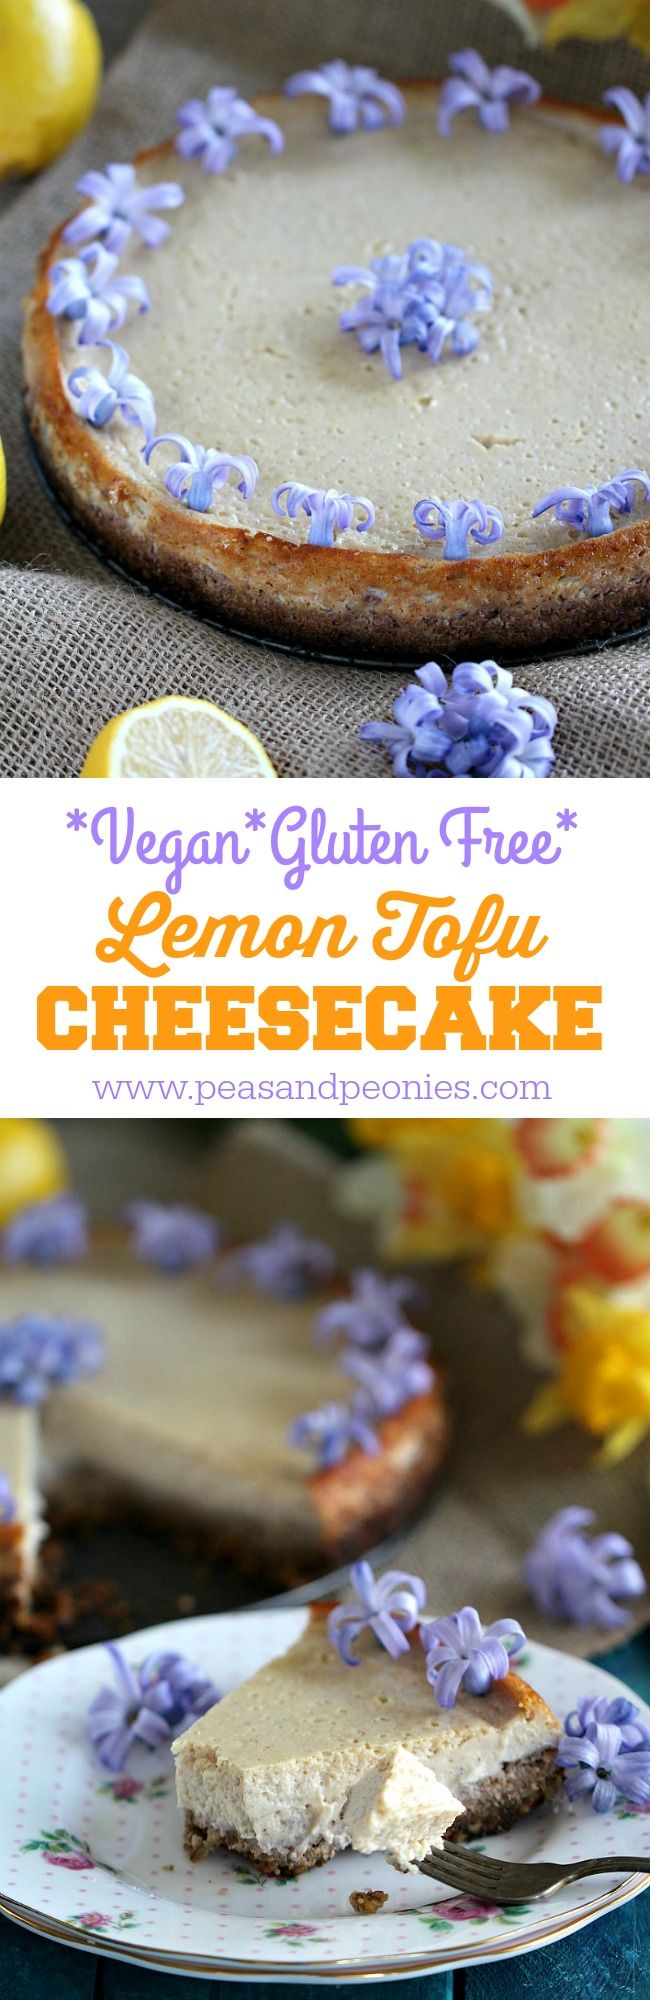 Vegan and Gluten Free, this Lemon Tofu Cheesecake with a delicious honey walnut or maple syrup crust is creamy, luxurious and flavorful.